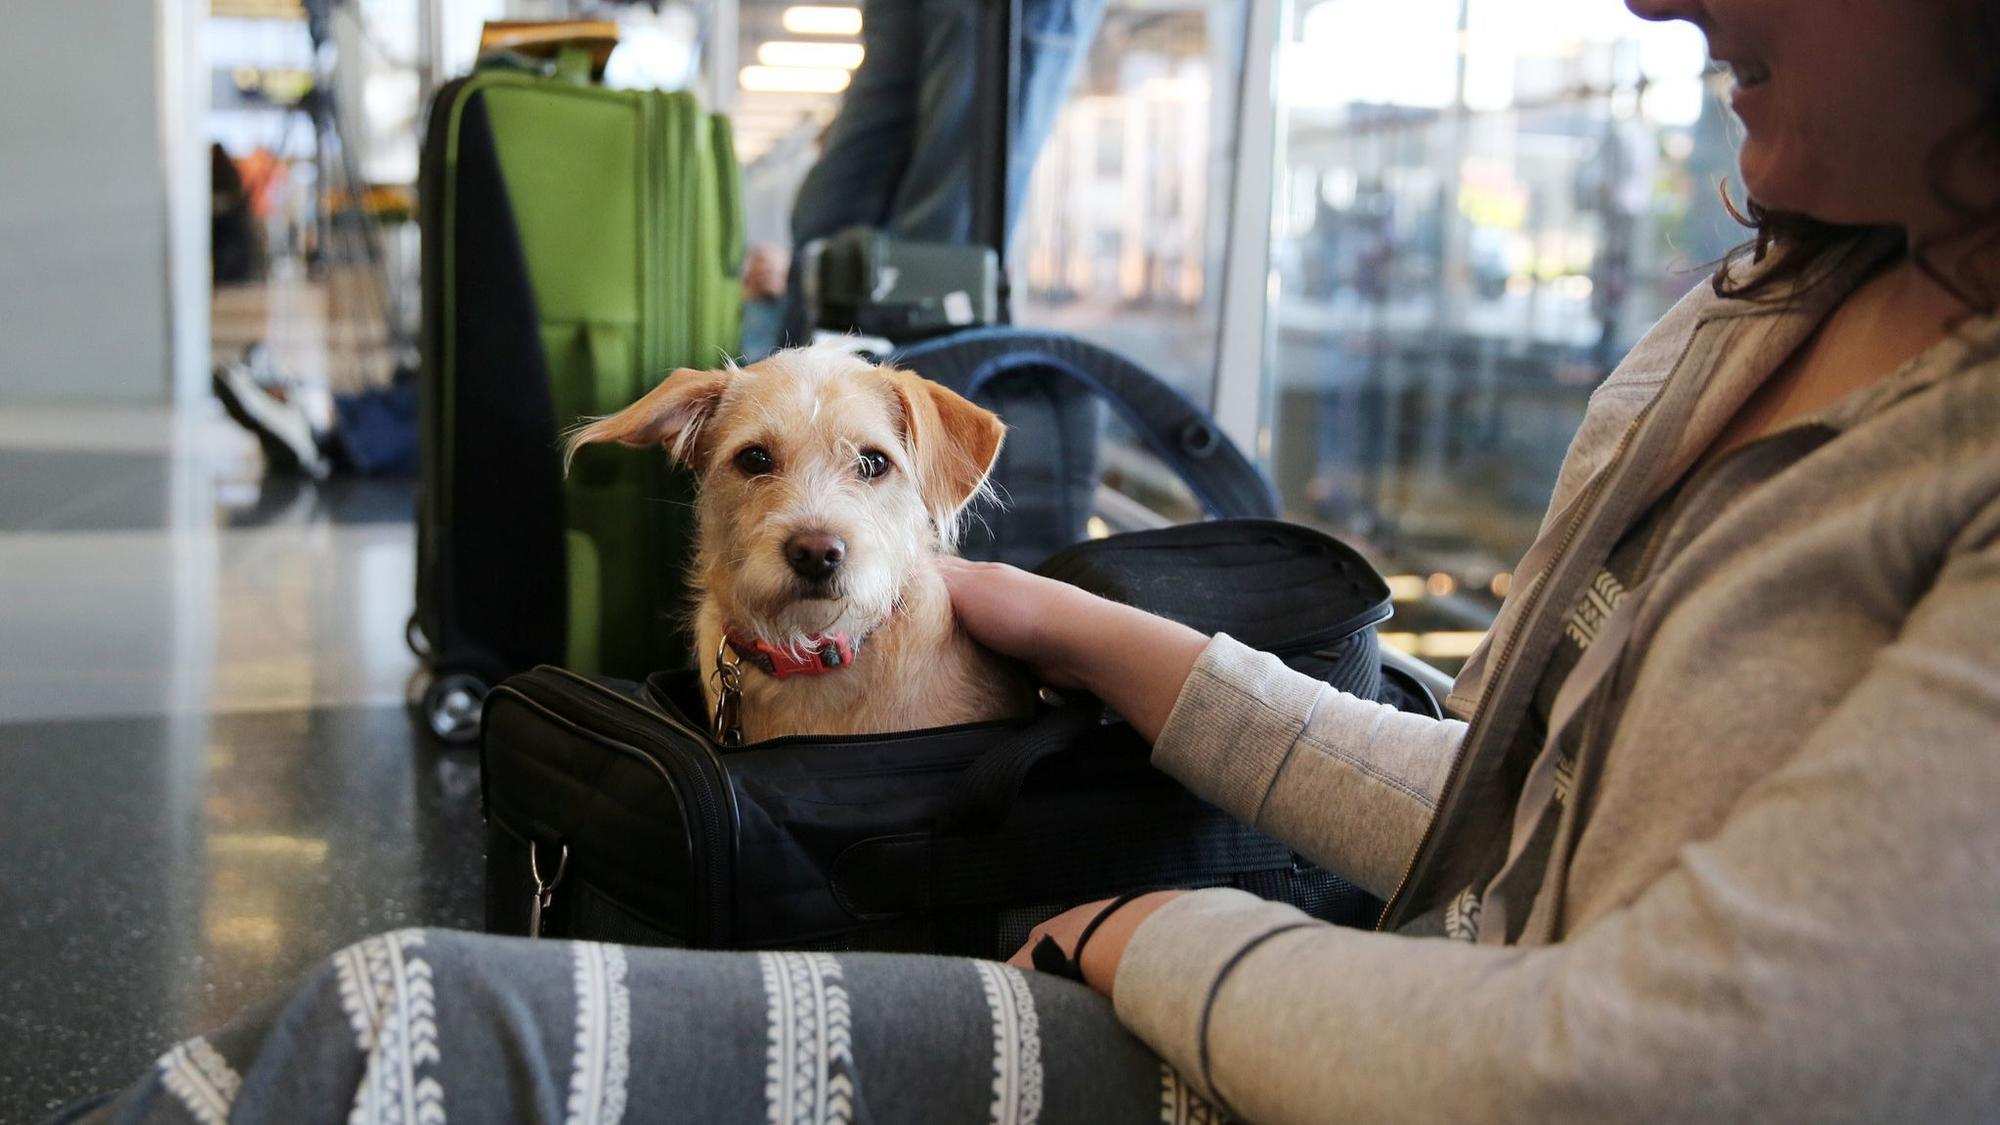 United Bans Nearly 50 Types Of Dogs And Cats After Series Of Animal